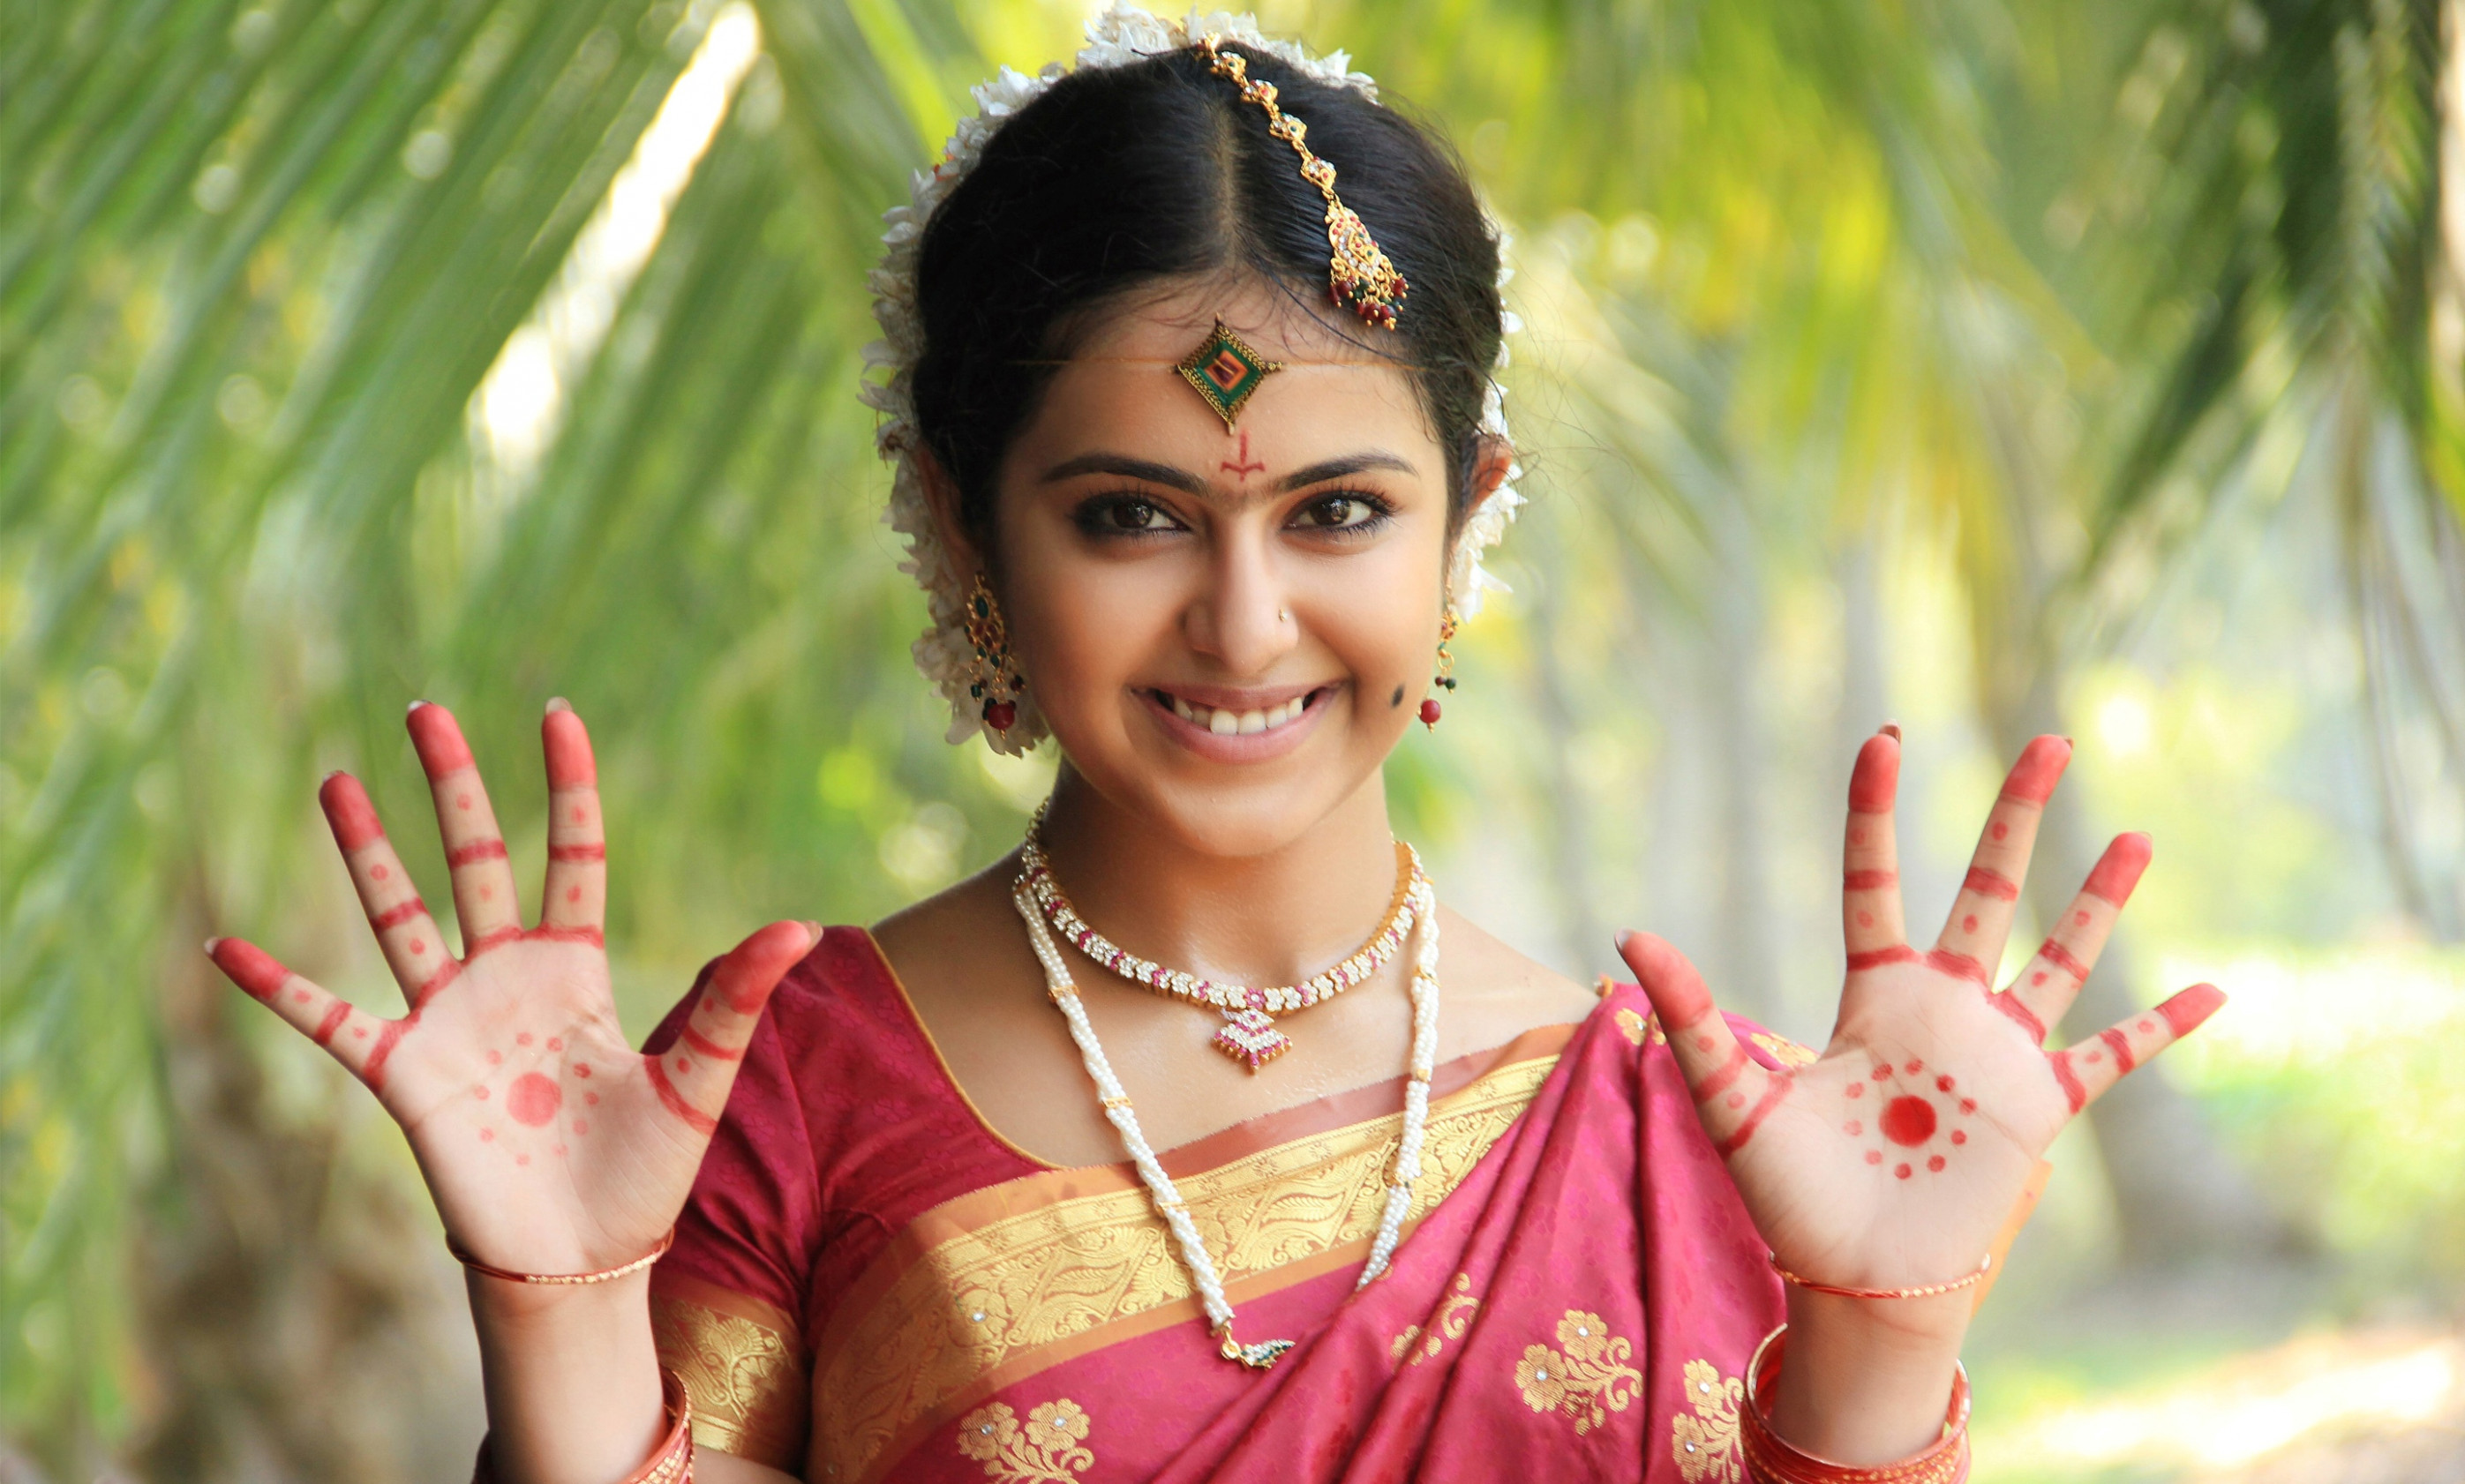 Upcoming Movies of Avika Gor in 2018, 2019, 2020 ...